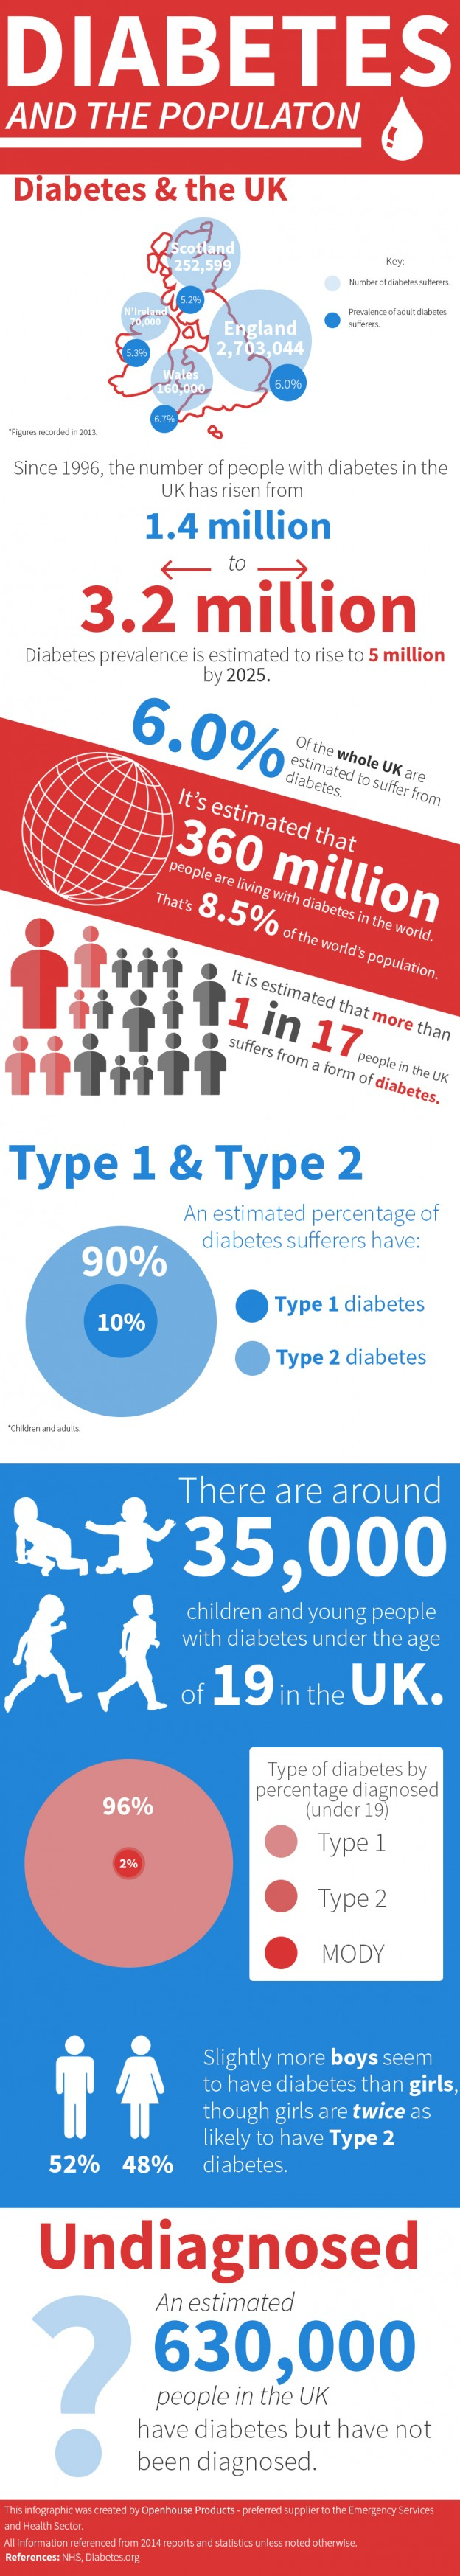 infographic diabetes and the population uk